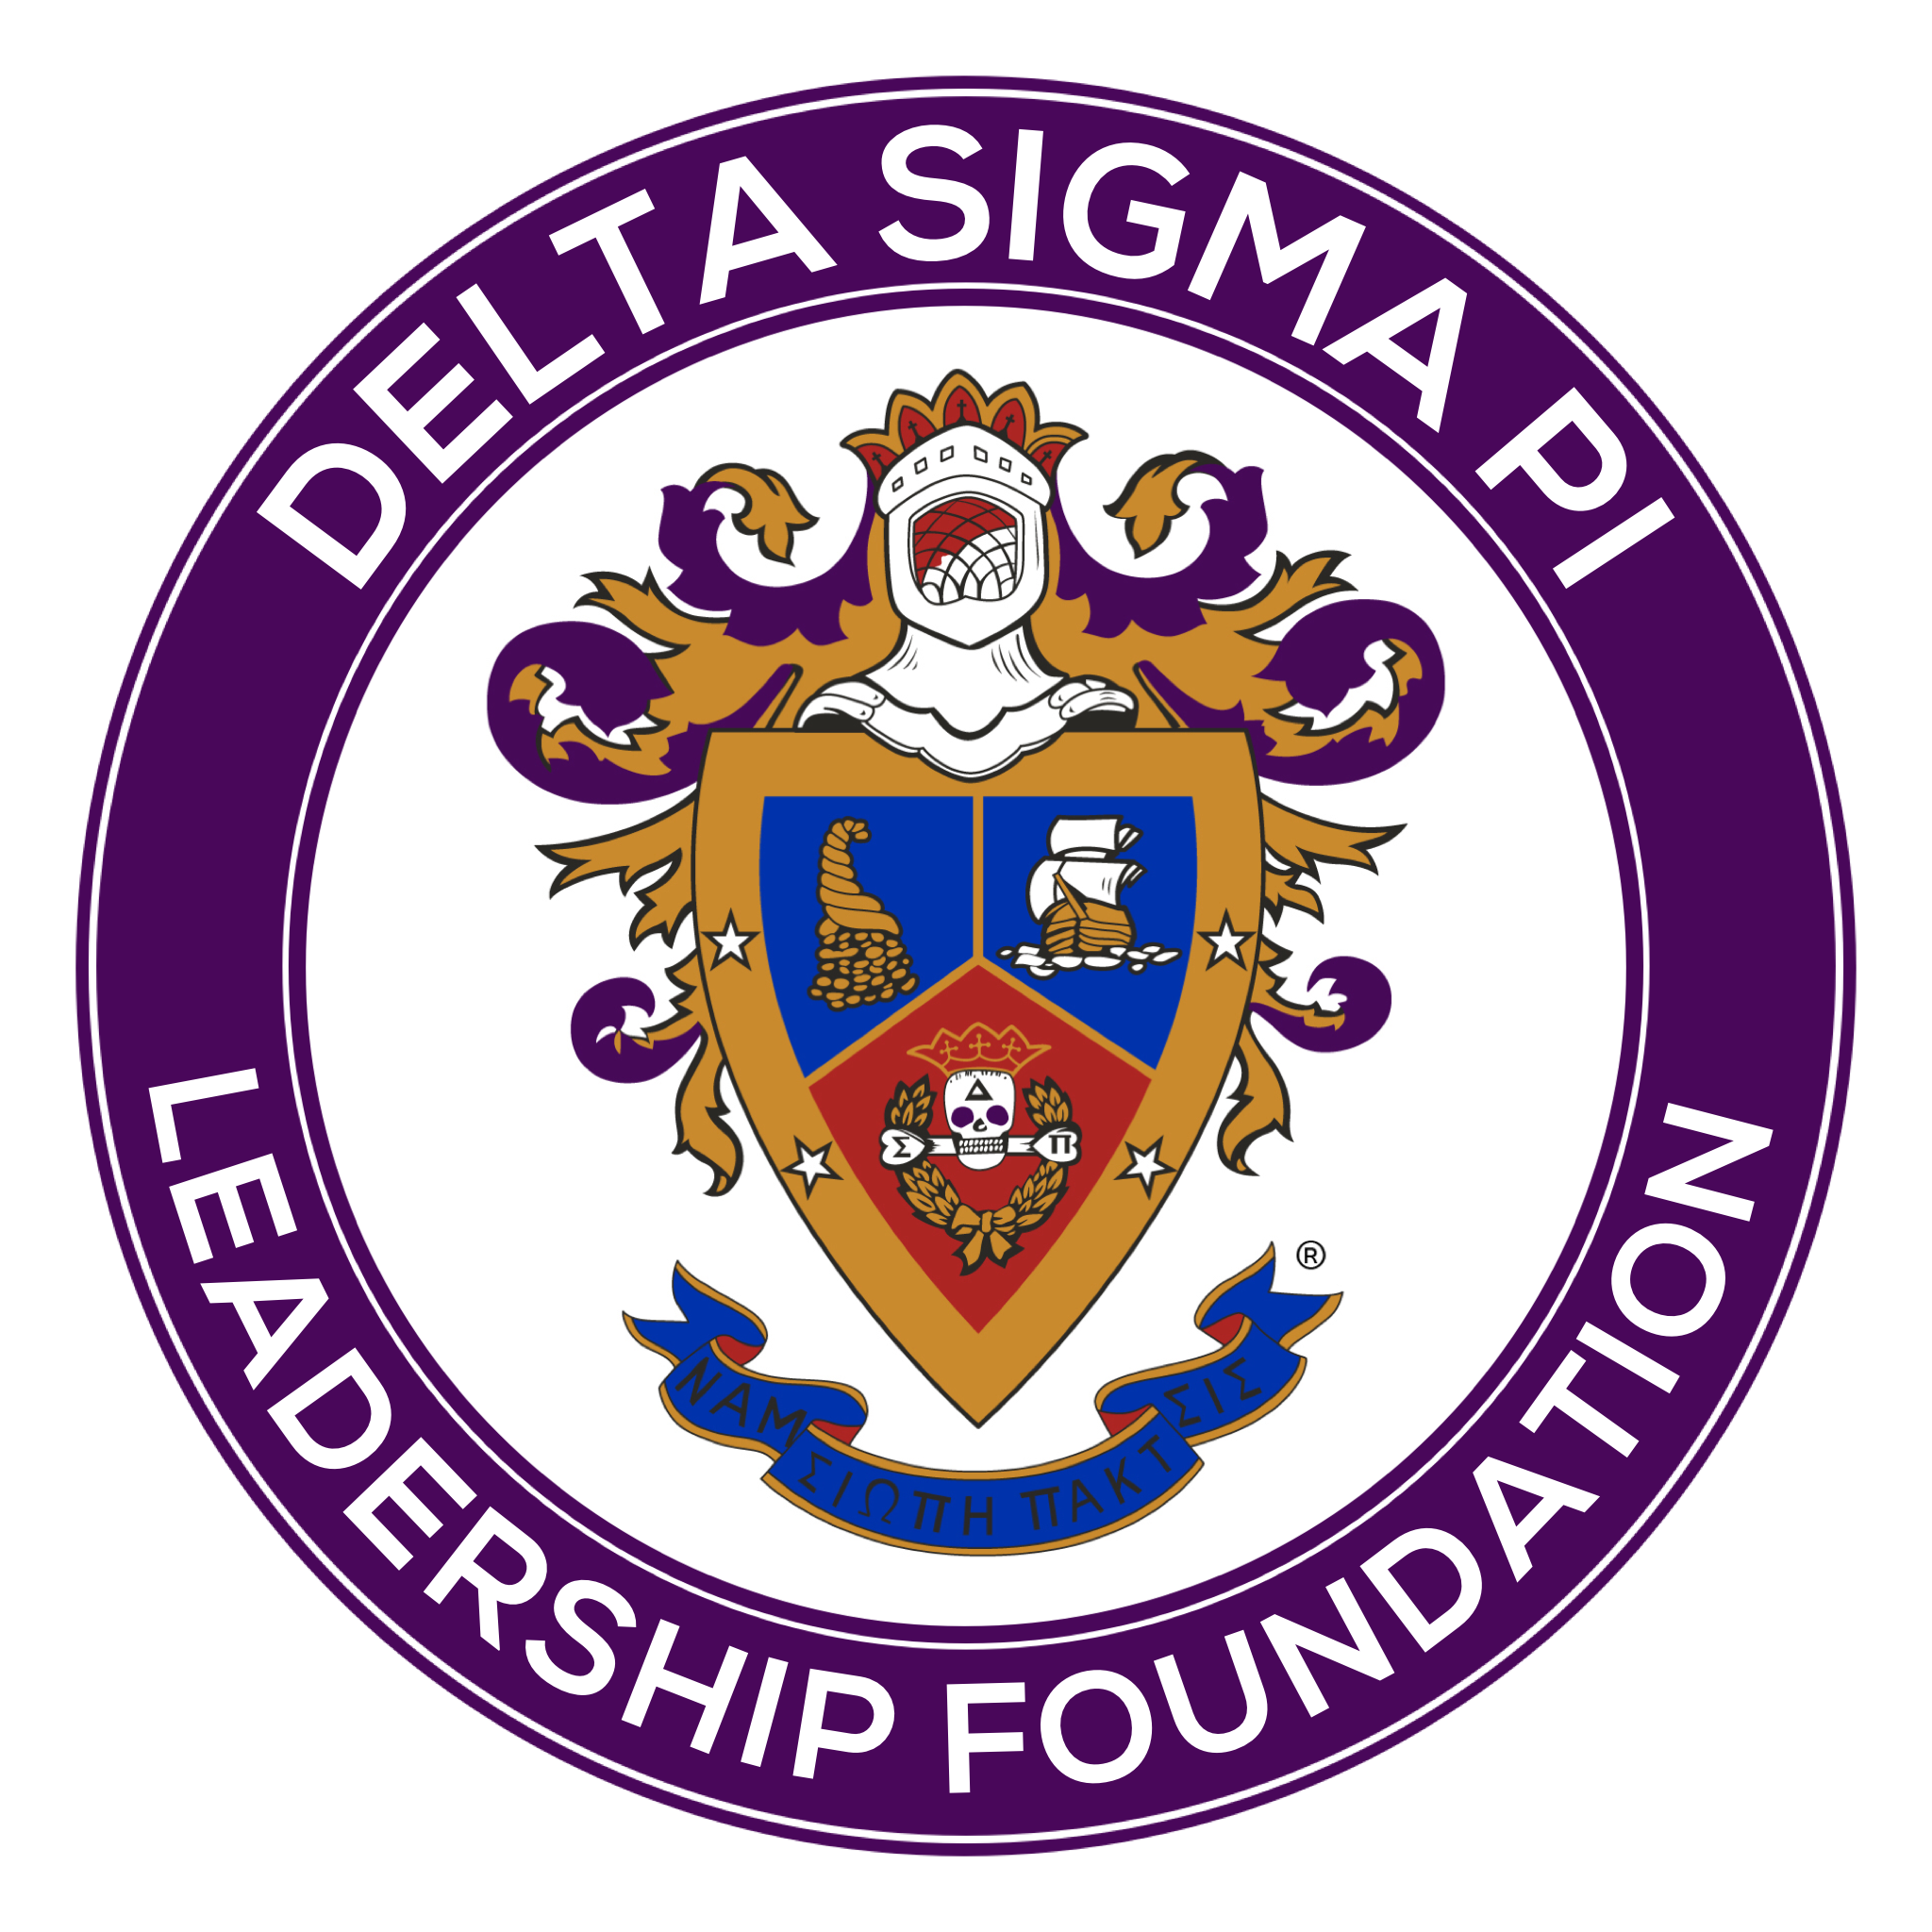 Leadership Foundation Seal - Full Color